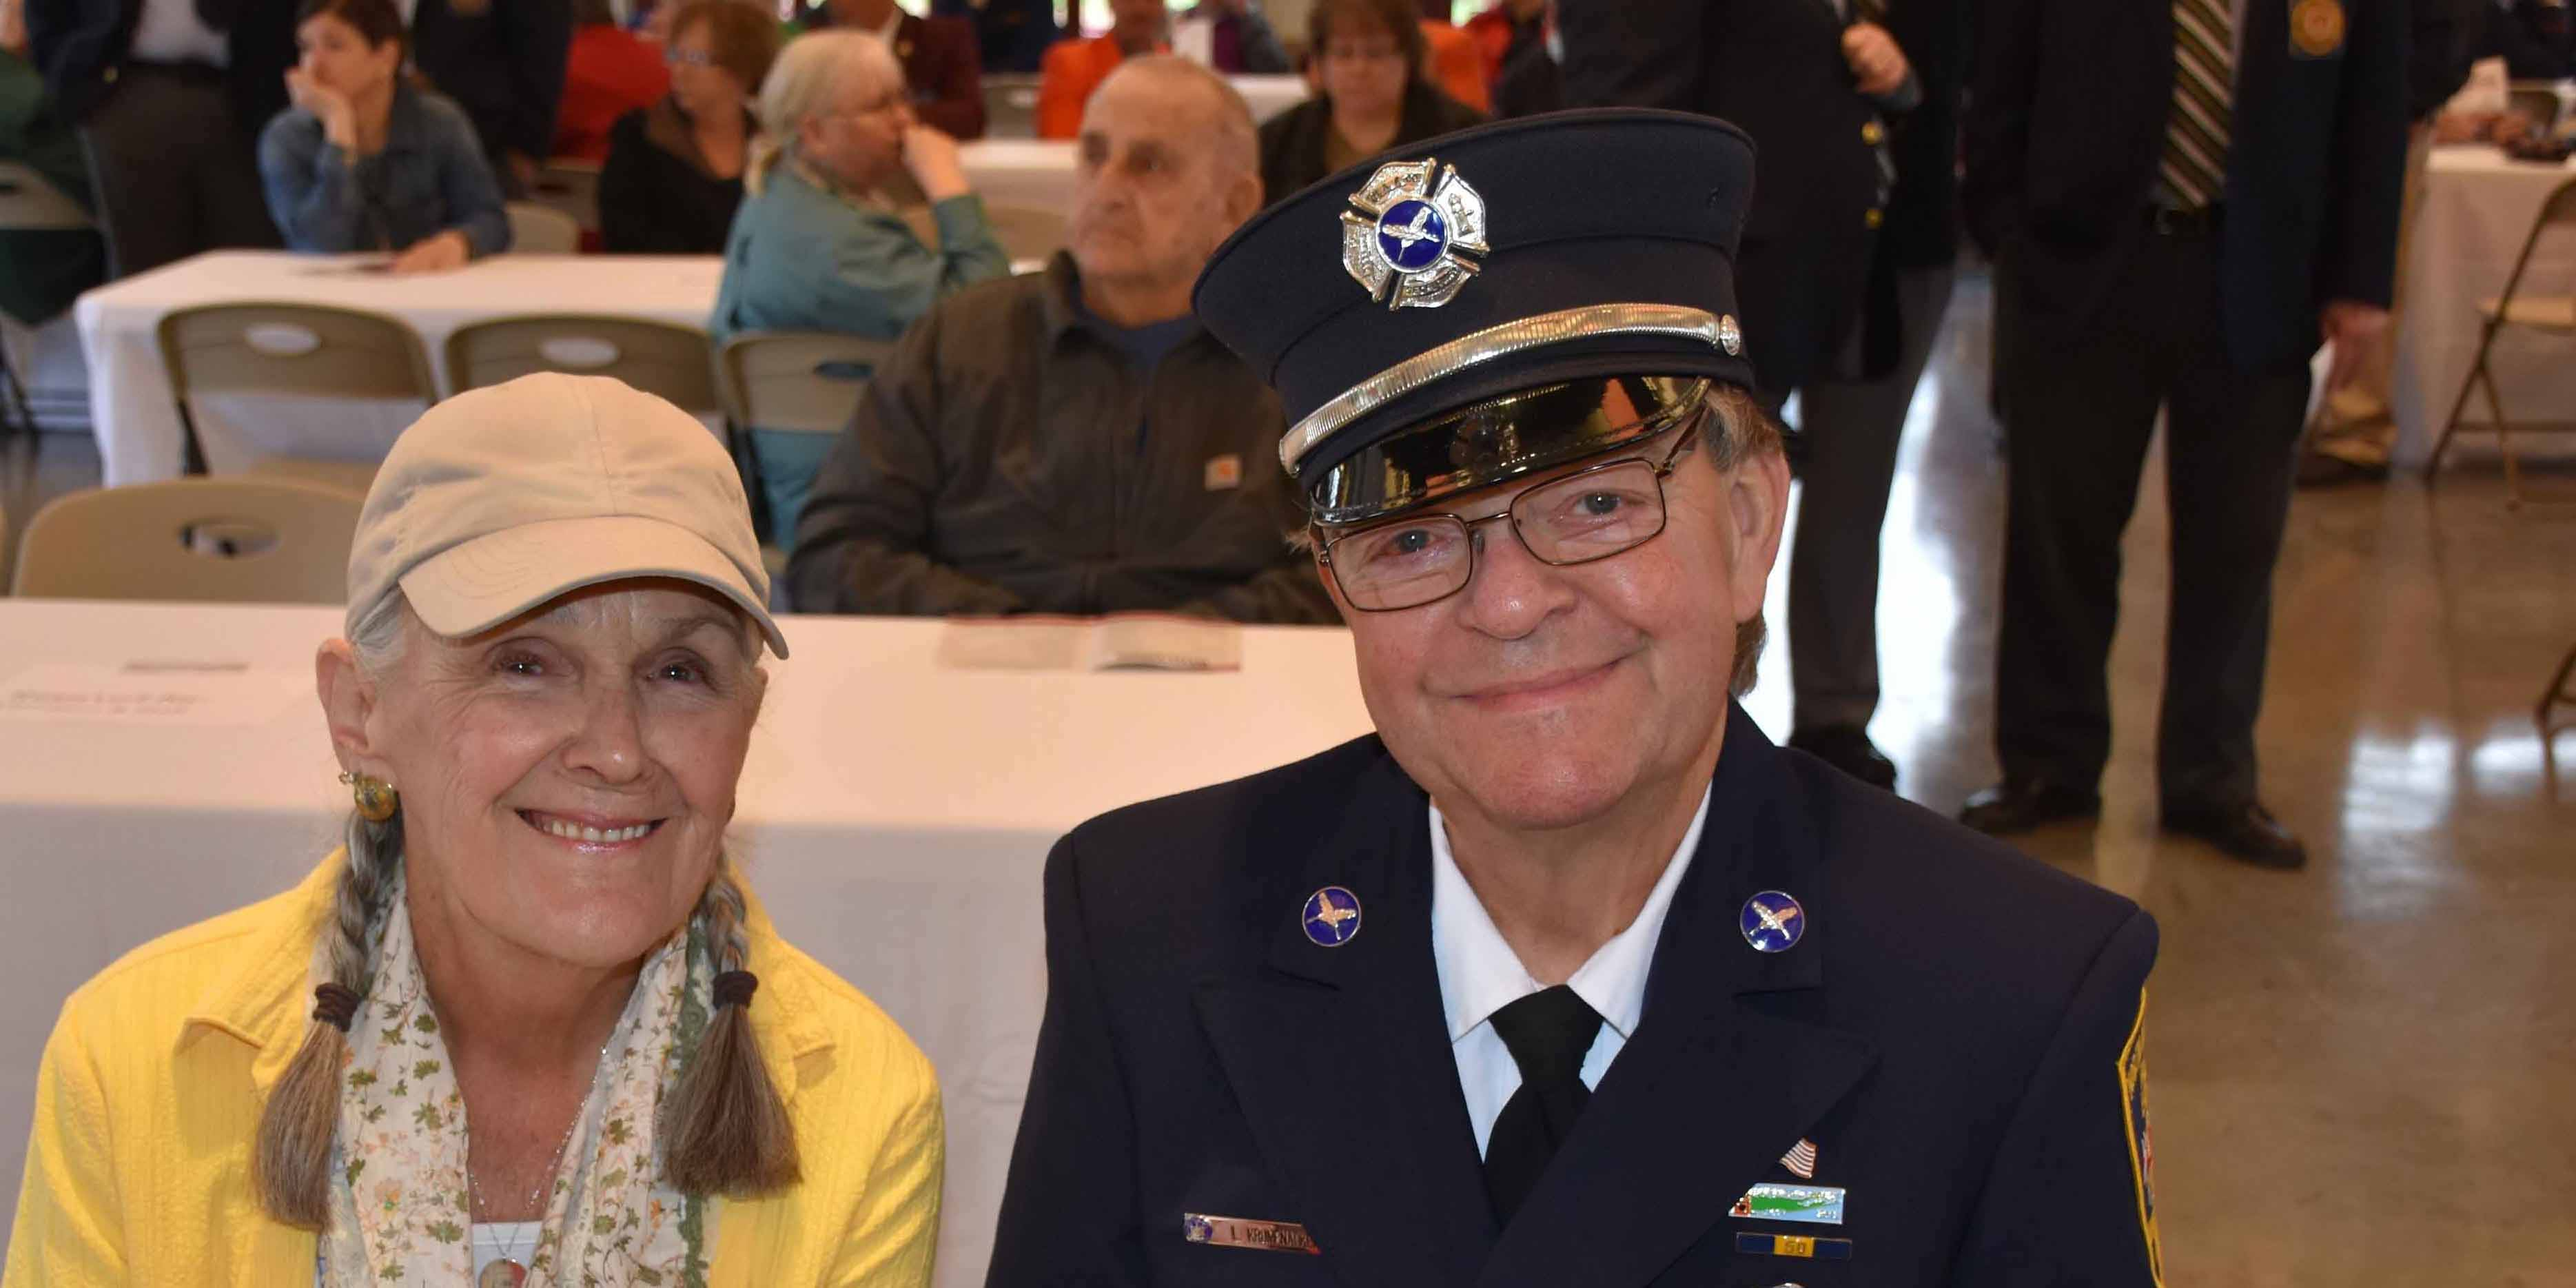 Diane-Soper-and-Larry-Krumenacker-of-North-Amityville-Fire-Co